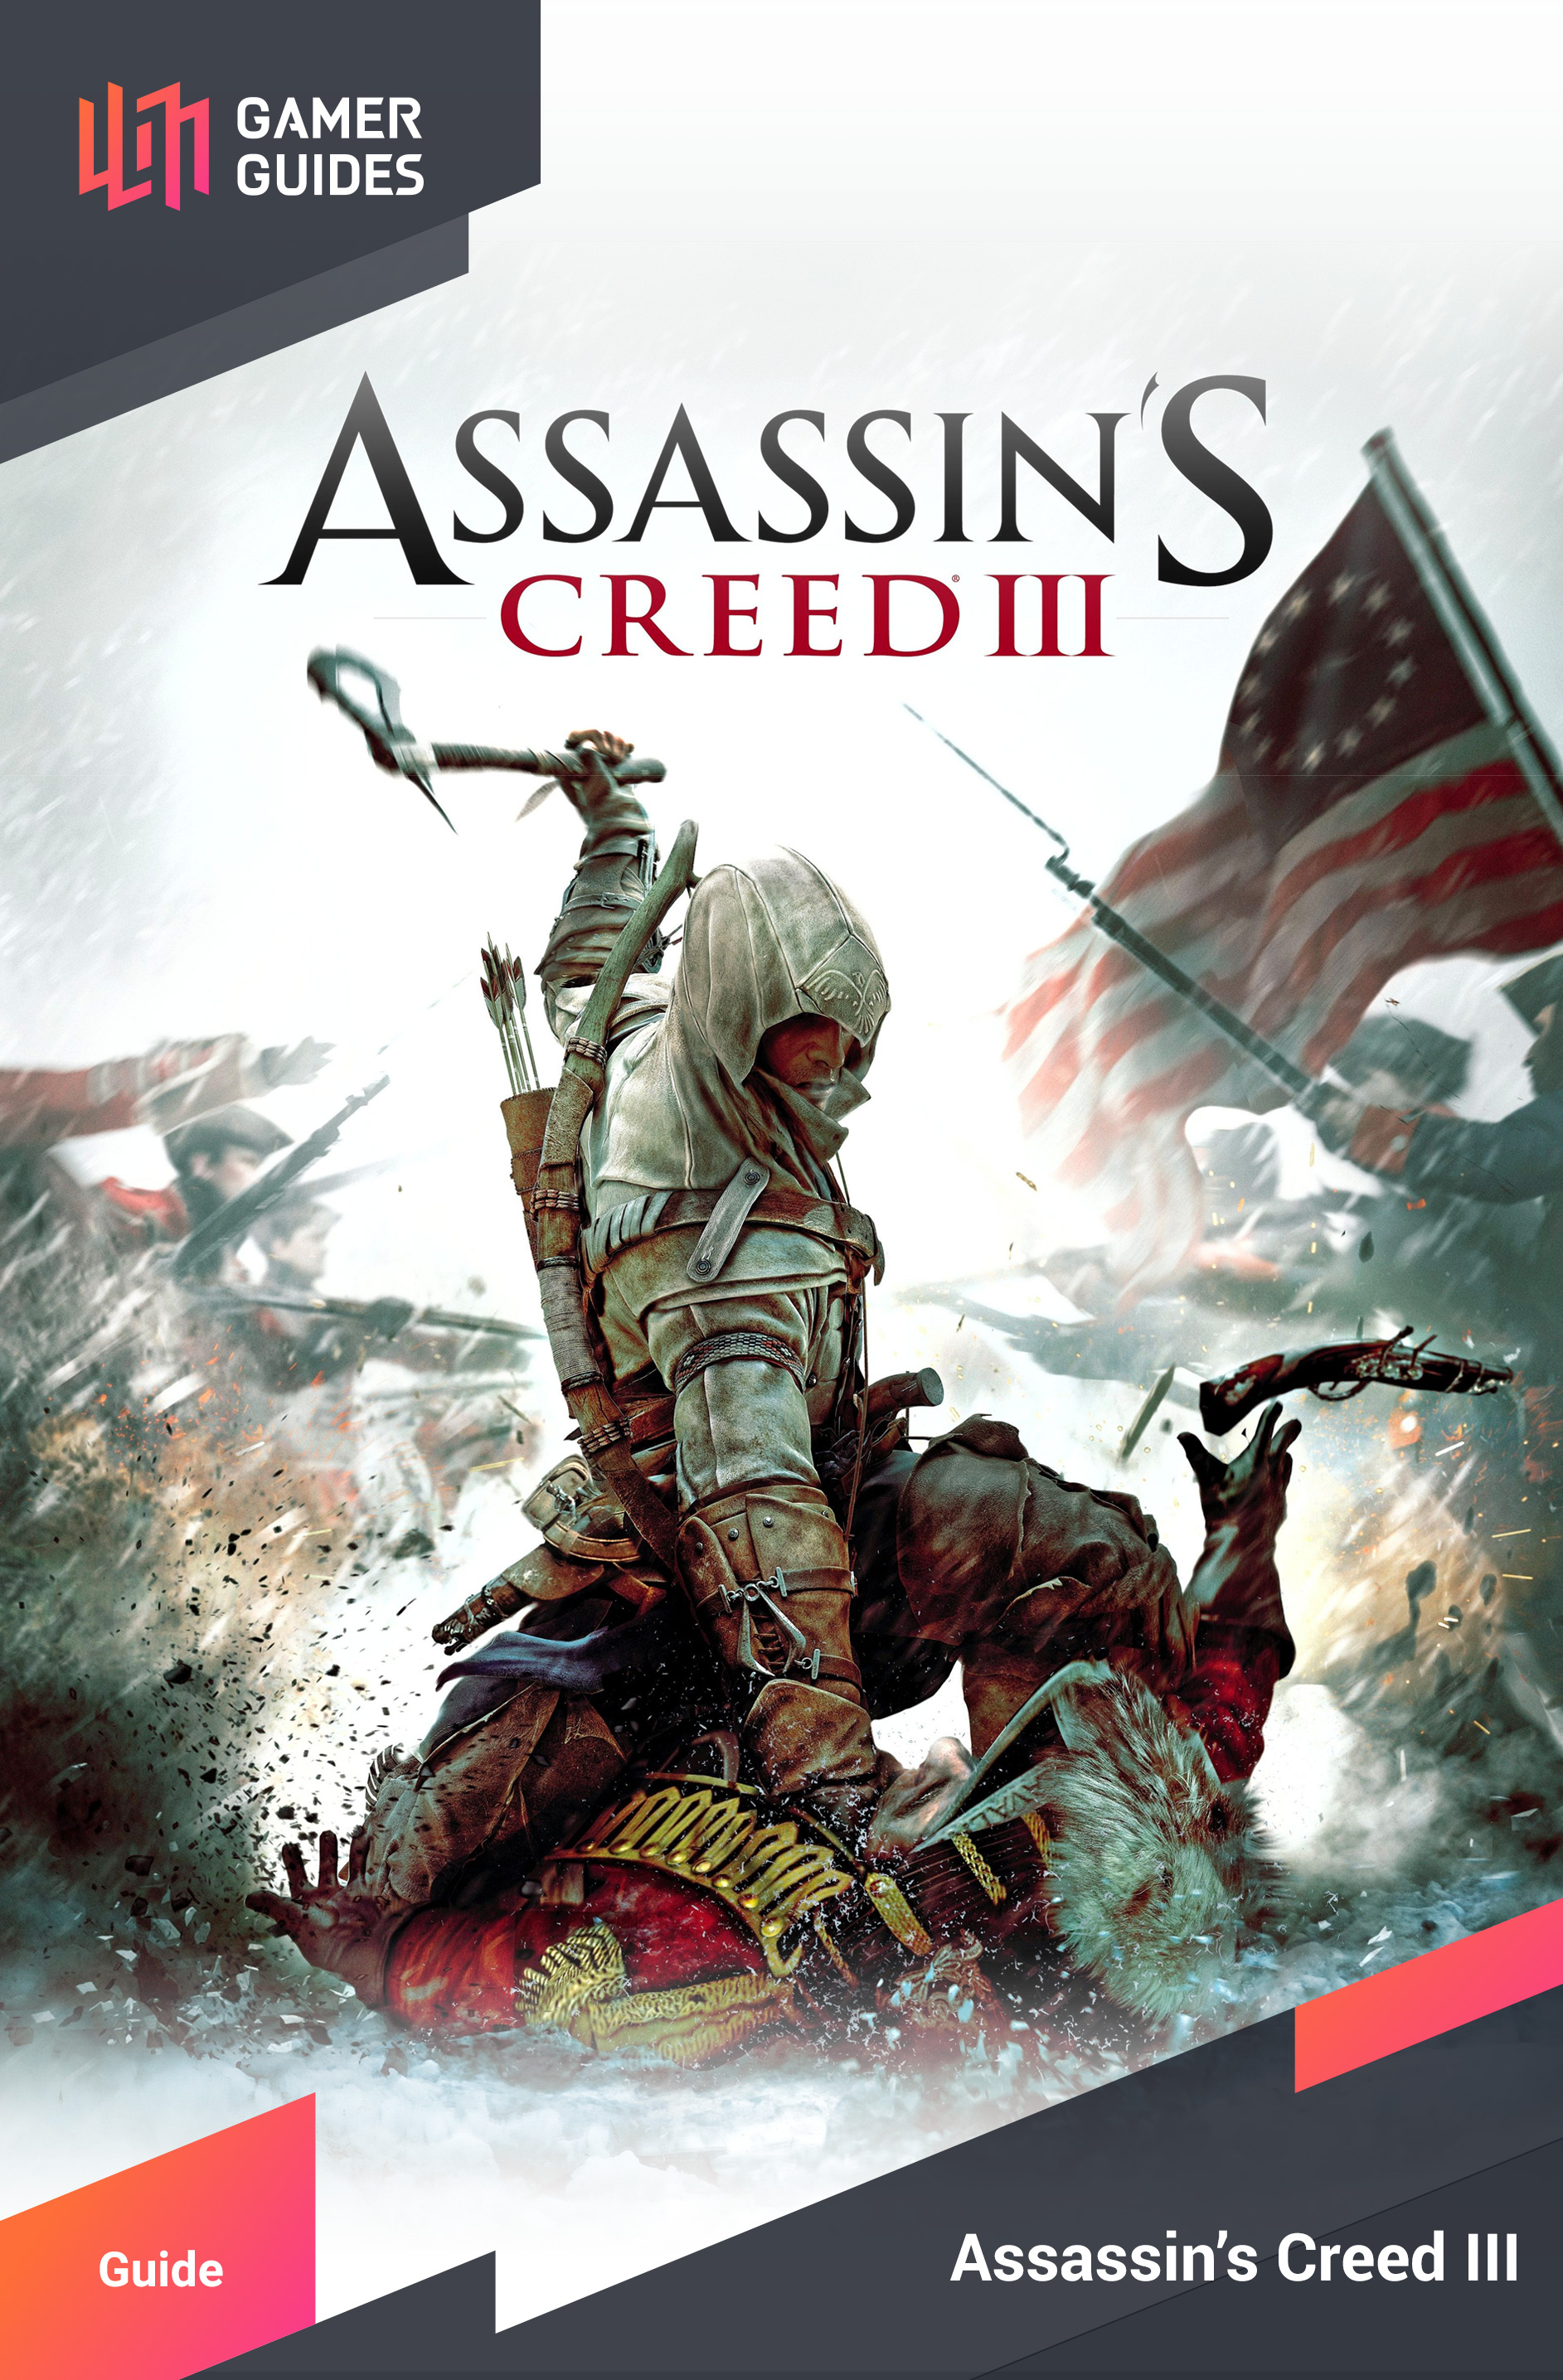 New York Fast Travel Assassin S Creed Iii Gamer Guides